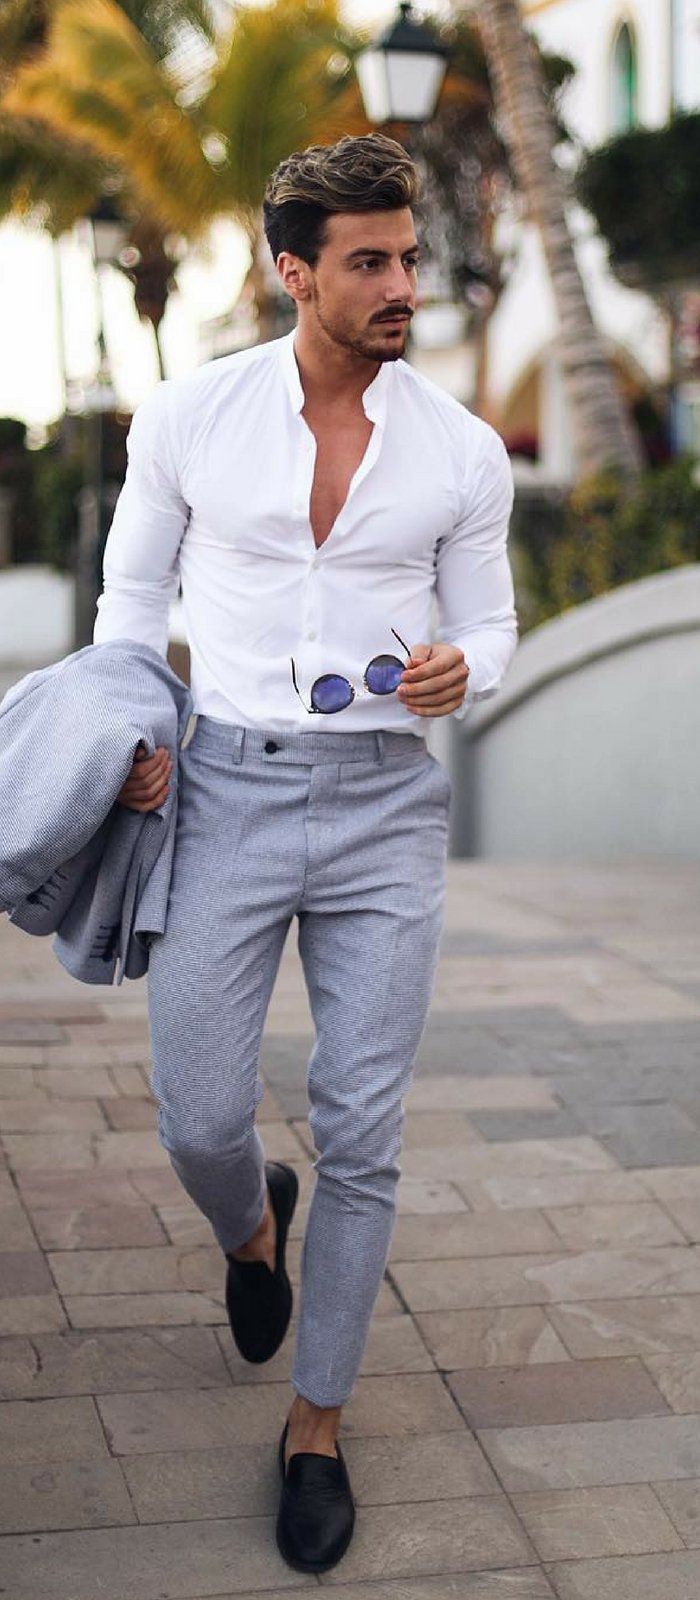 9 Minimal Business Casual Outfits For Men in 2019 | Men's ...